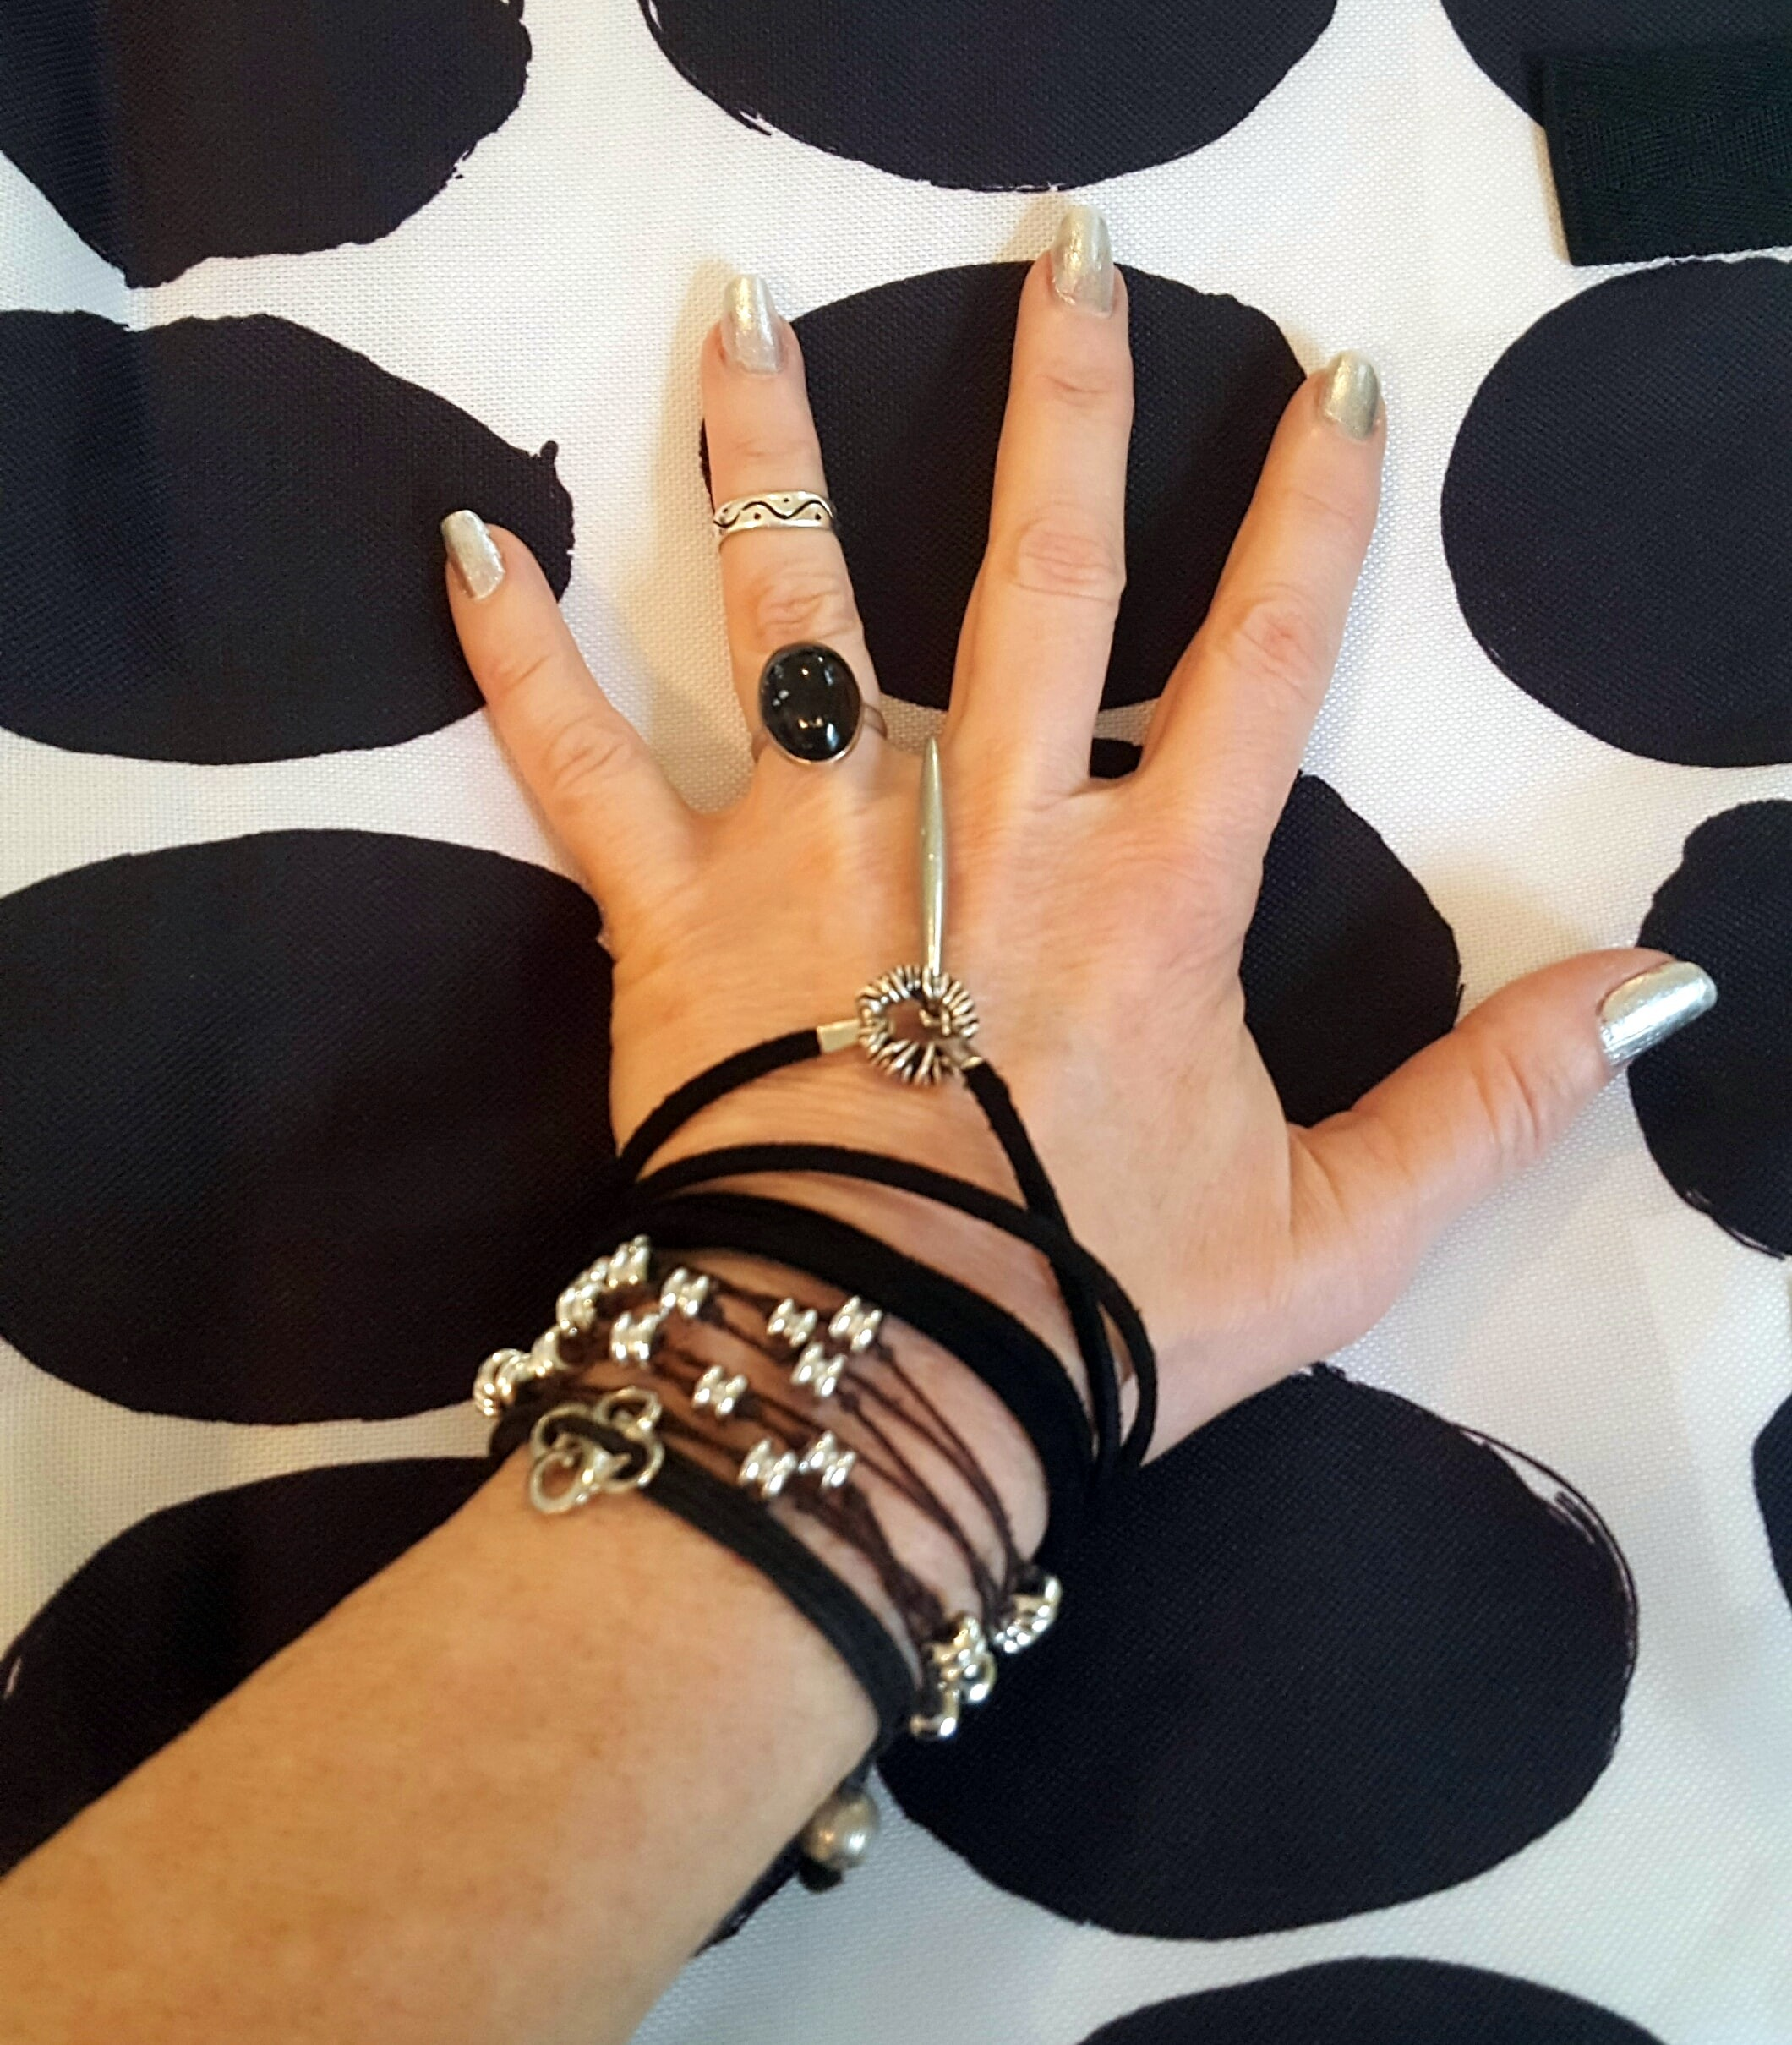 black and silver suede wrap bracelet lariat worn as bracelet.jpg